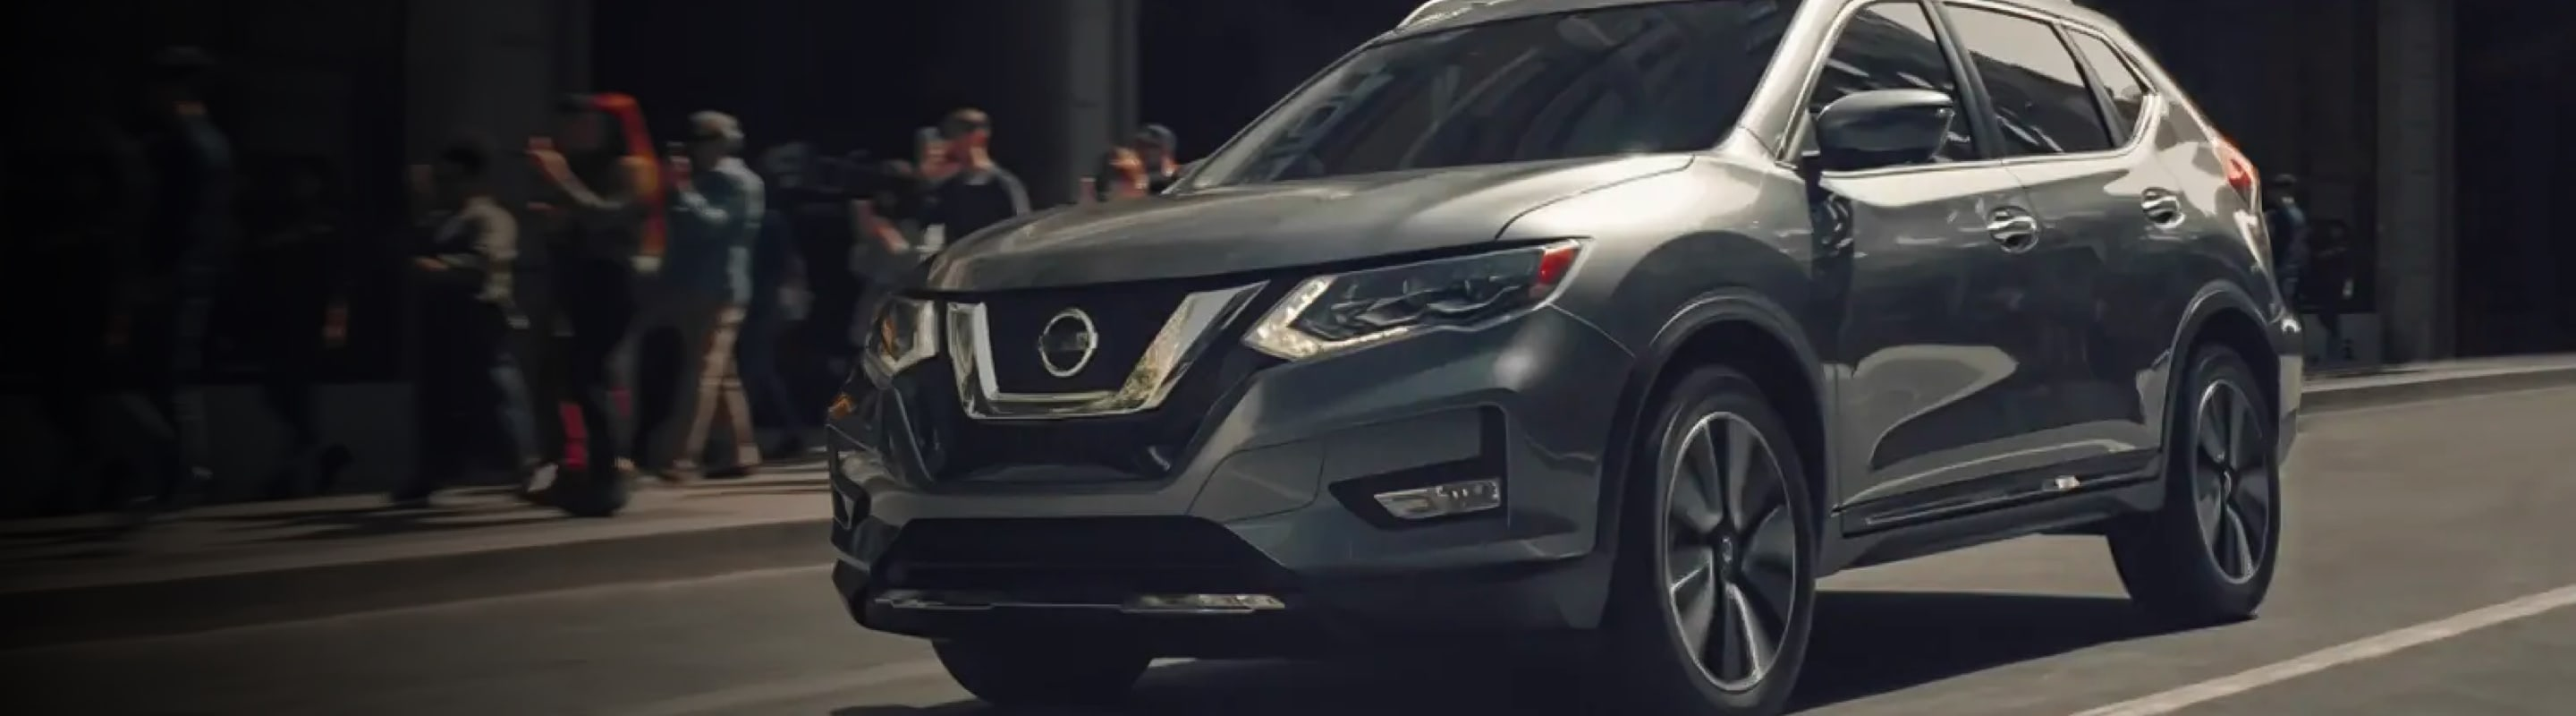 2020 Nissan Rogue driving on a city street